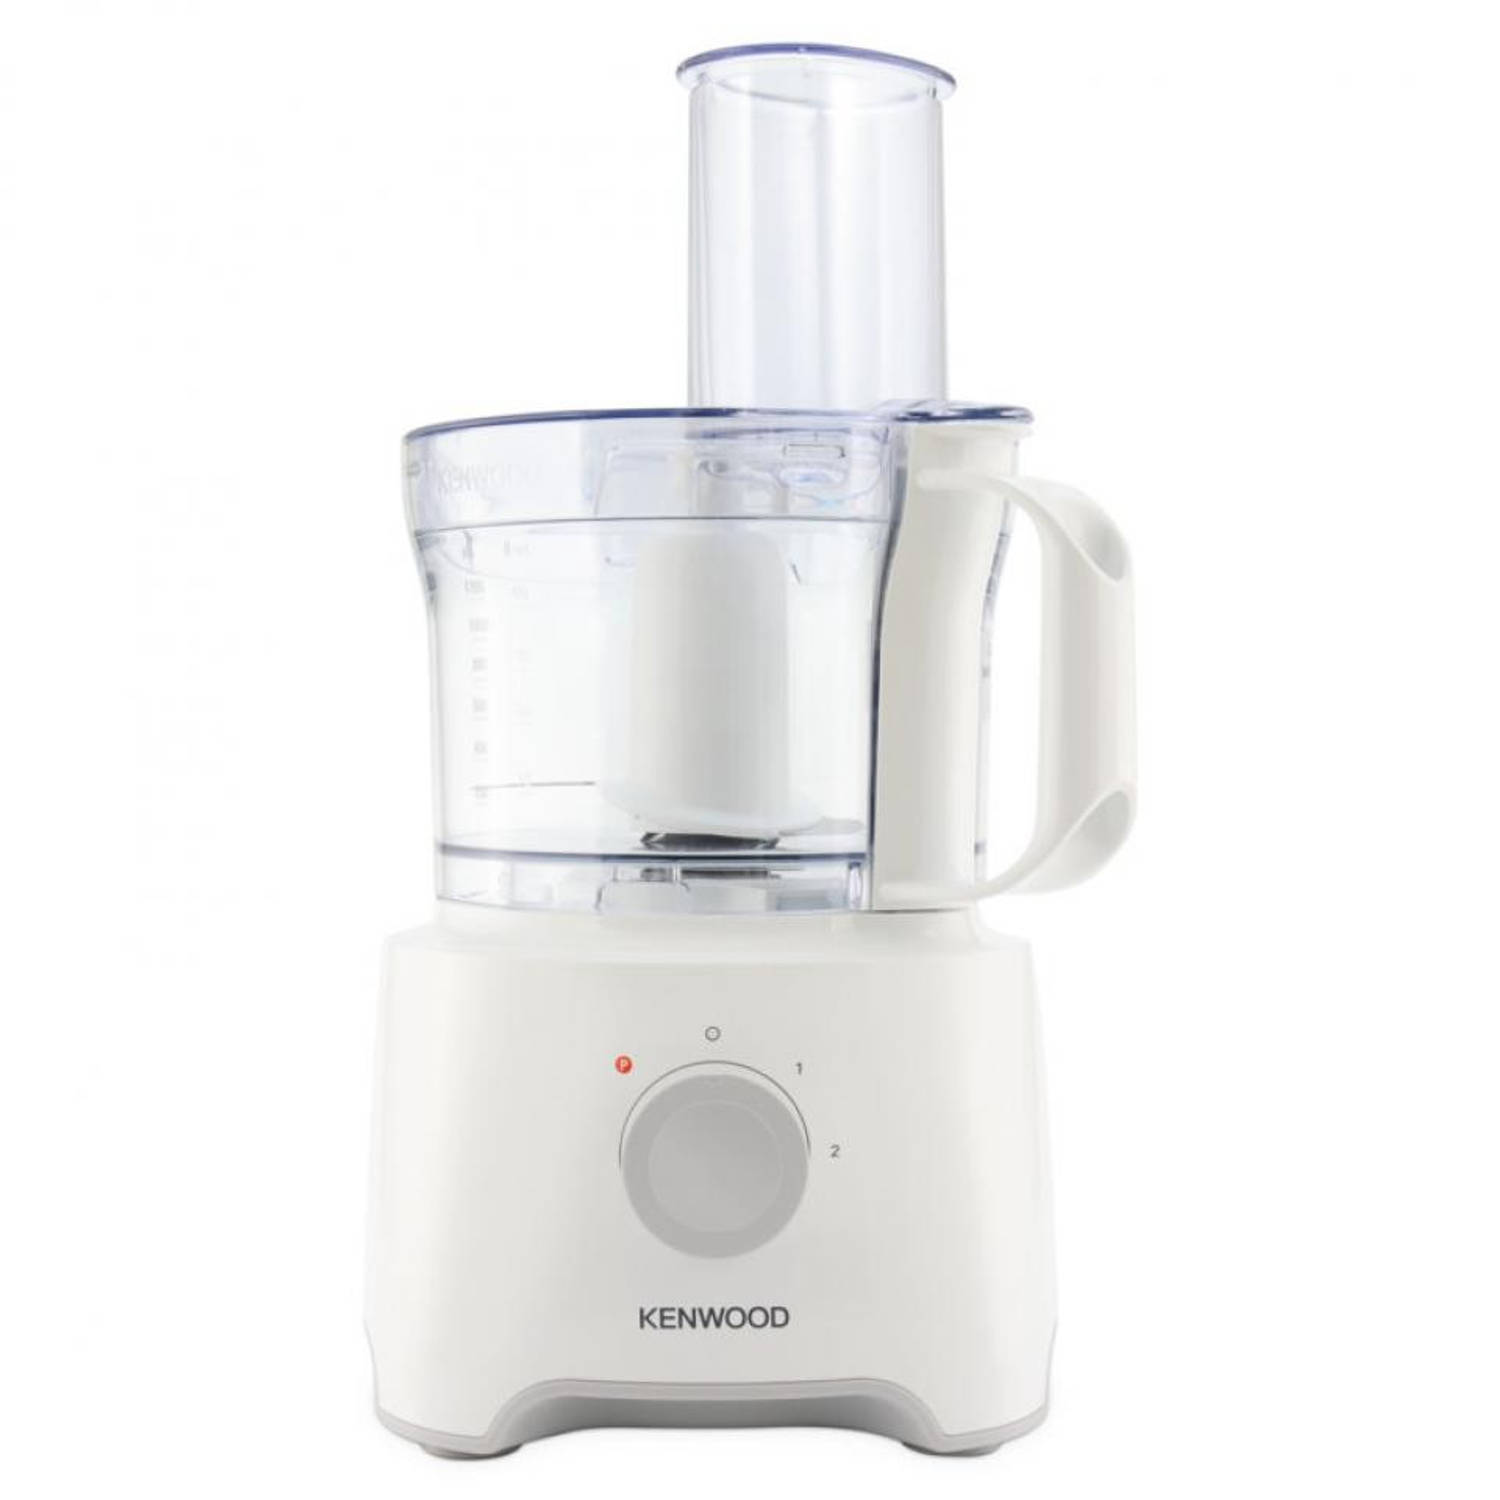 Kenwood foodprocessor Multipro Compact FDP301WH